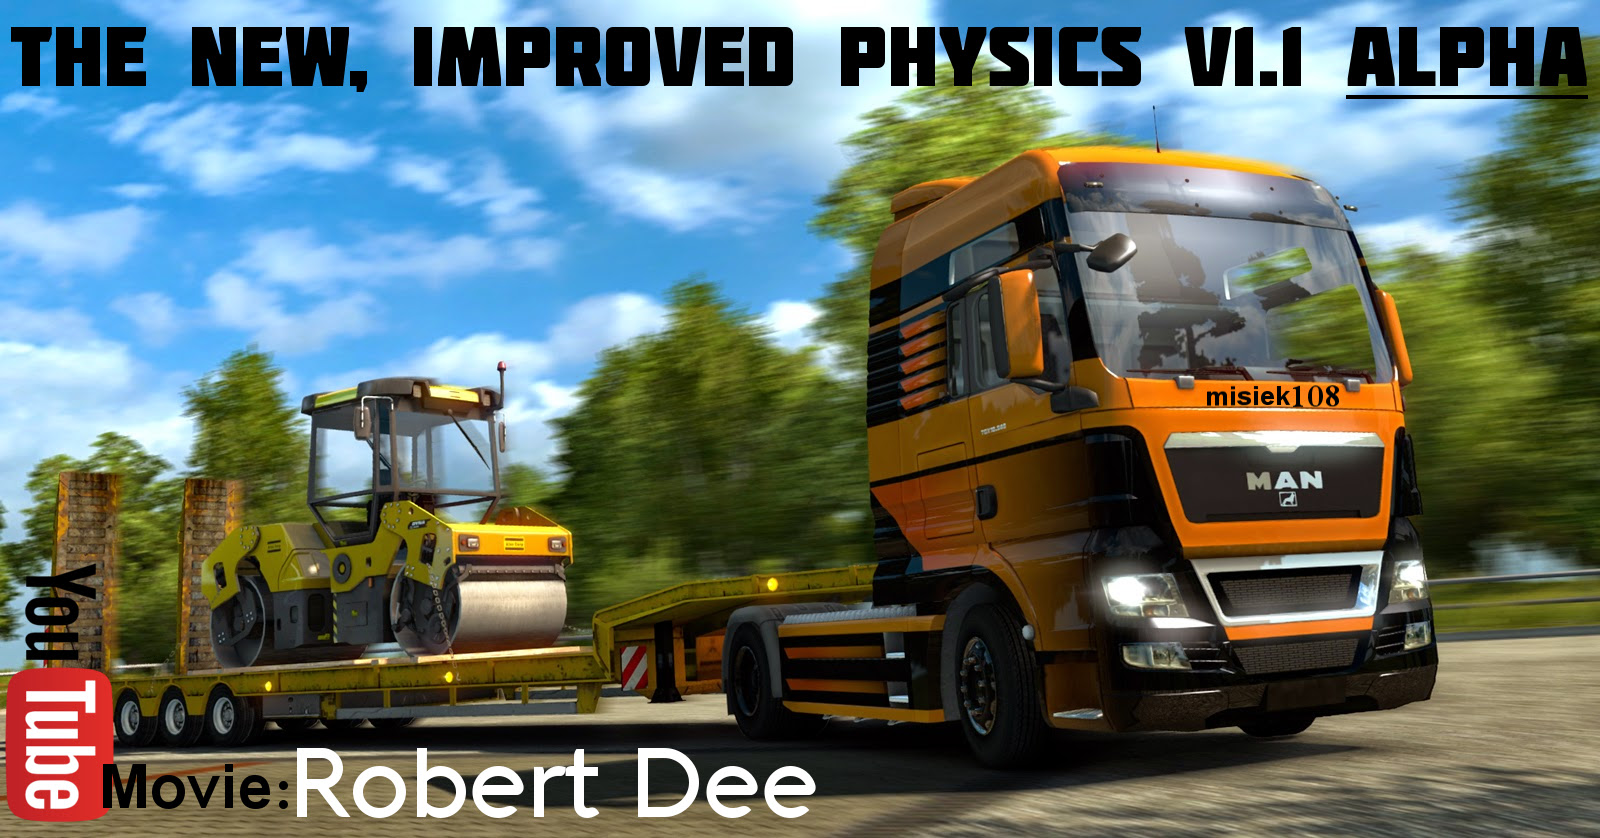 The new, improved physics v1.1 (Alpha) by Misiek108